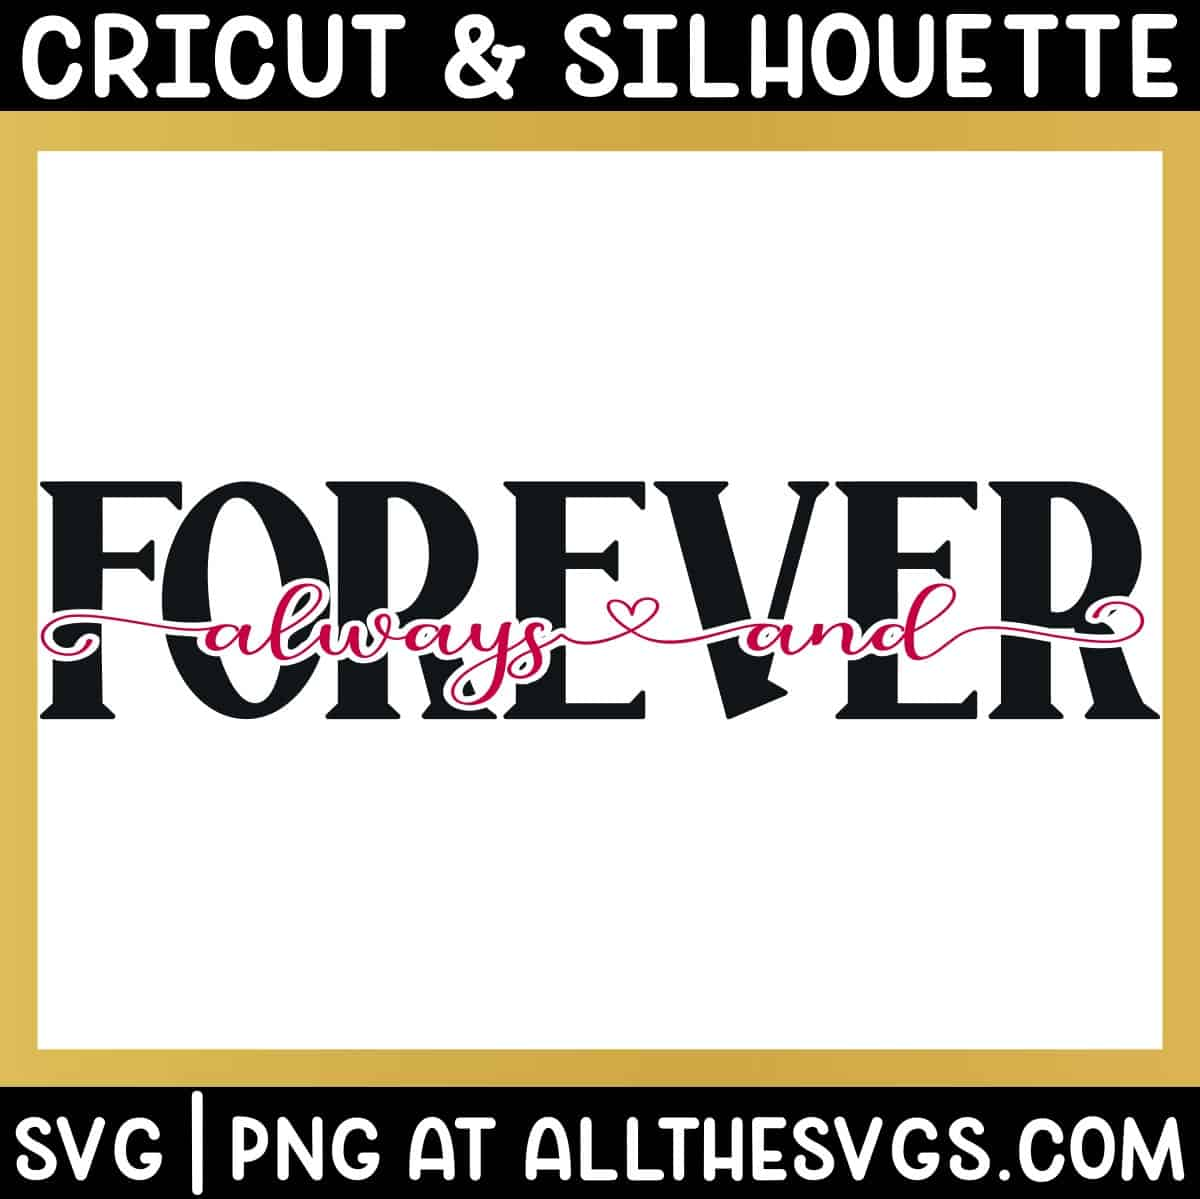 always and in cursive with heart glyphs as knockout of forever in bold caps.